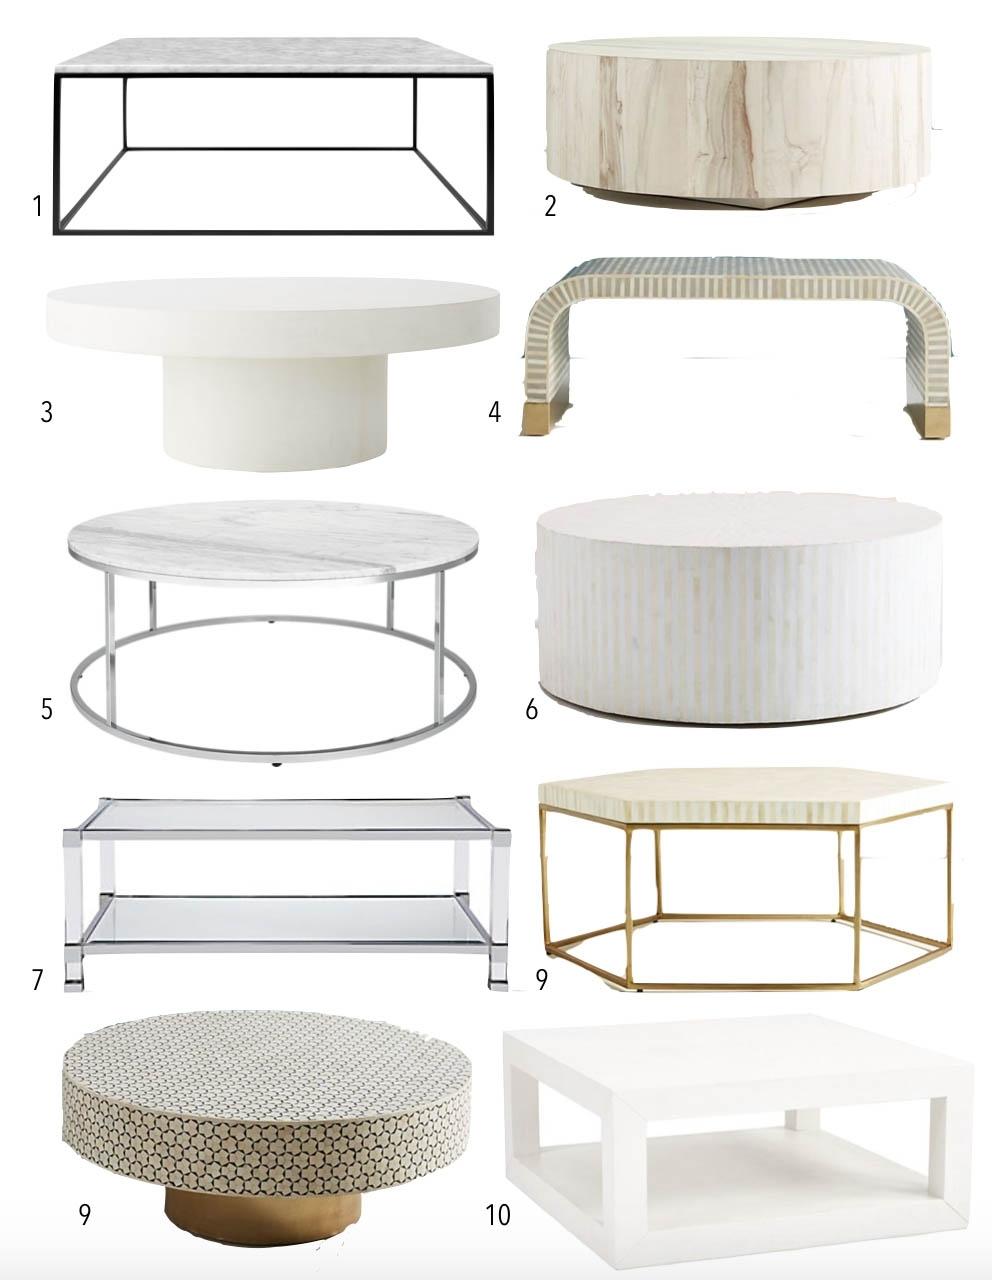 10 Light And White Coffee Tables • Thestylesafari Pertaining To Shroom Large Coffee Tables (Gallery 28 of 30)